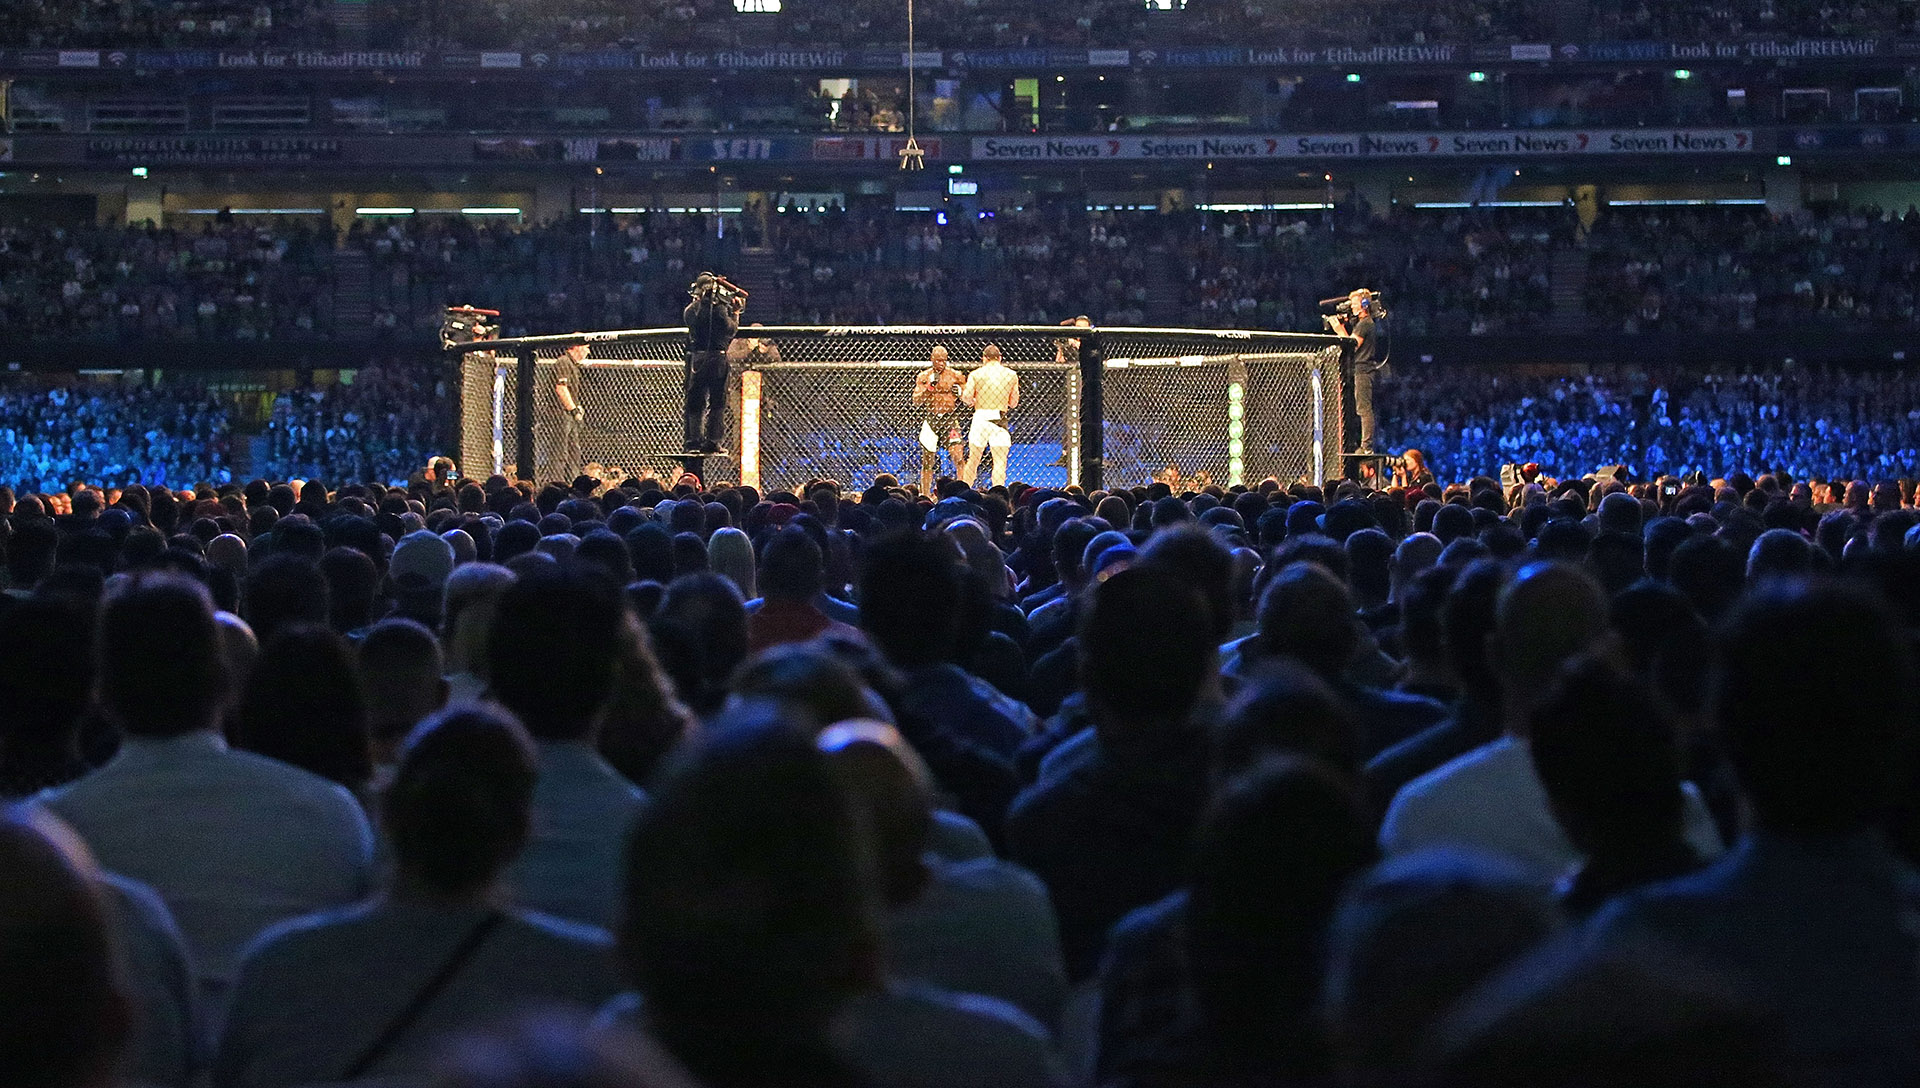 A general view as Robert Whittaker of New Zealand and Uriah Hall of Jamaica compete in their middleweight bout during the UFC 193 event at Etihad Stadium on November 15, 2015 in Melbourne, Australia. (Photo by Scott Barbour /Zuffa LLC/Zuffa LLC via Getty Images)